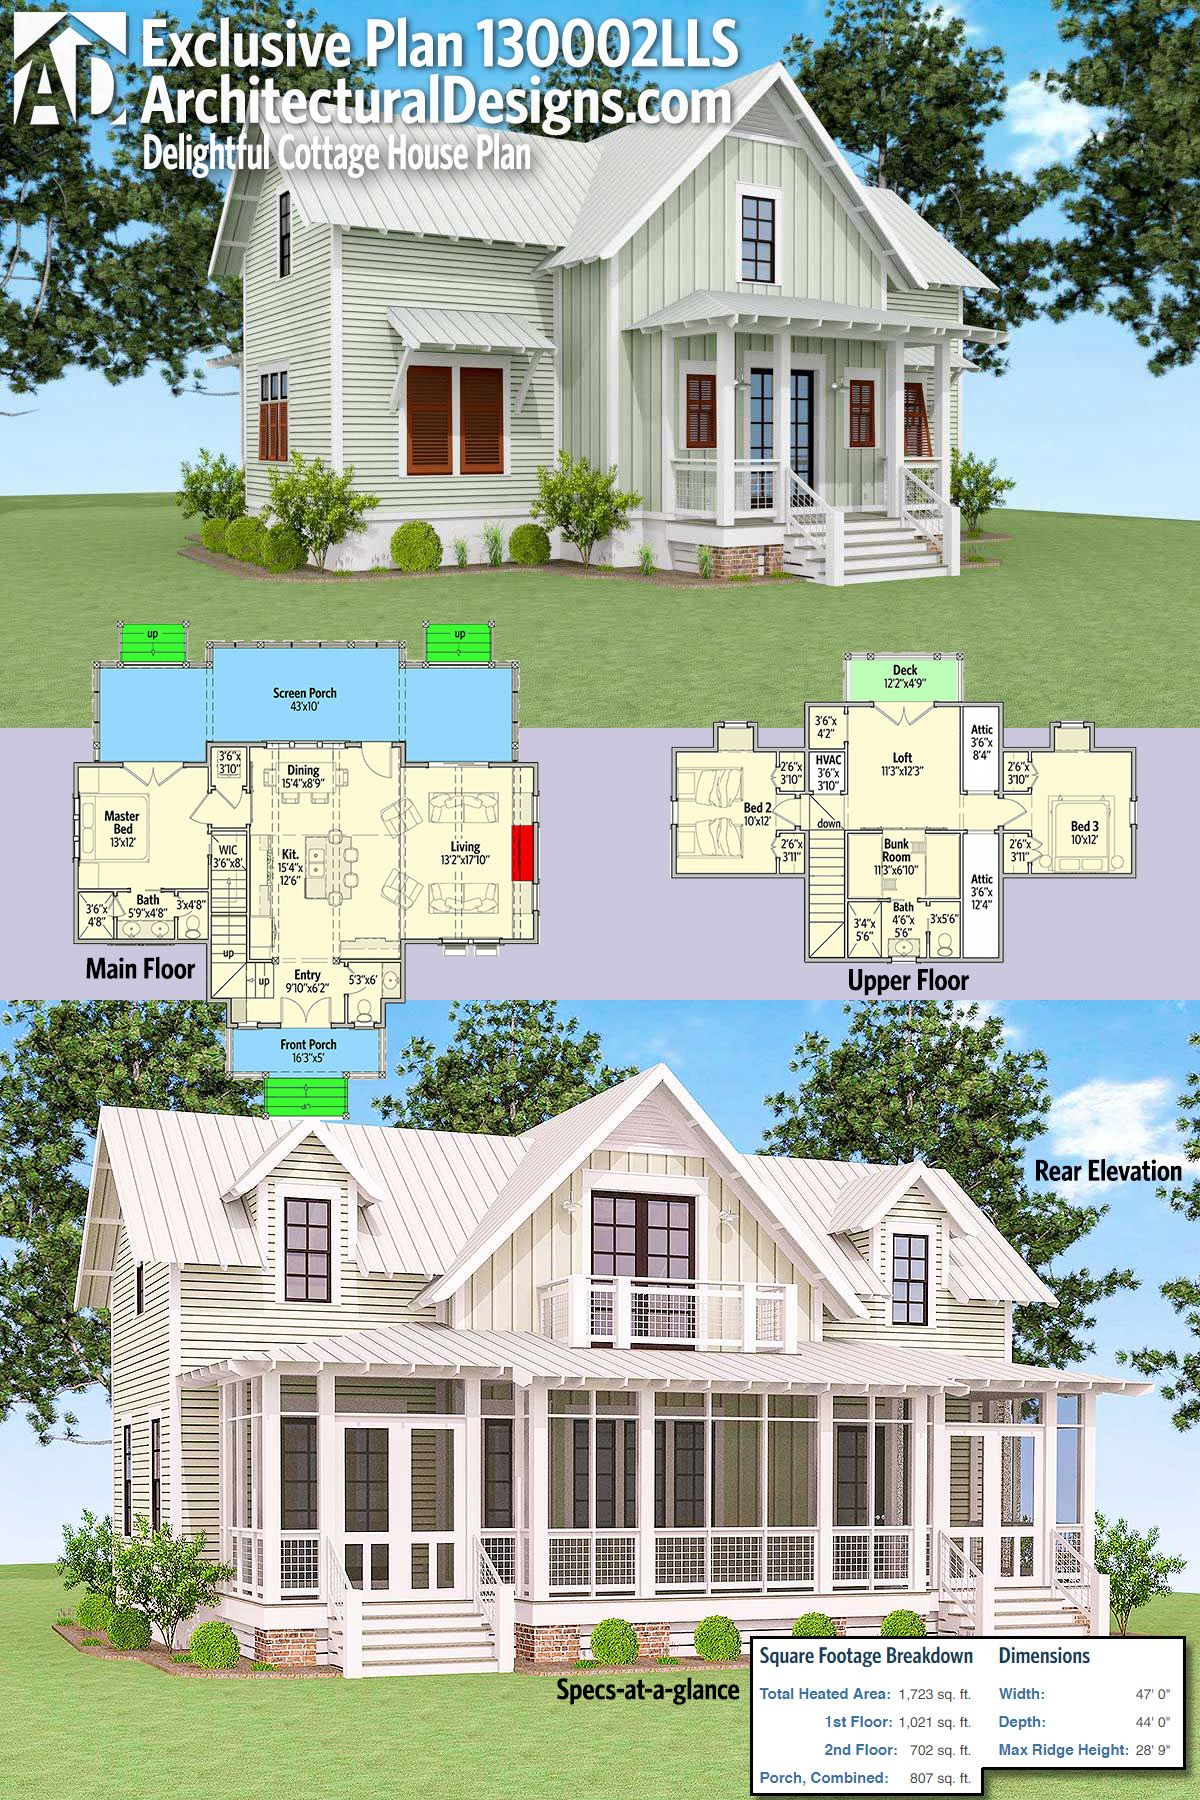 Architectural Designs Exclusive Delightful Cottage House Plan 130002lls Has Large Rear Screened In Country Cottage House Plans Mountain House Plans House Plans